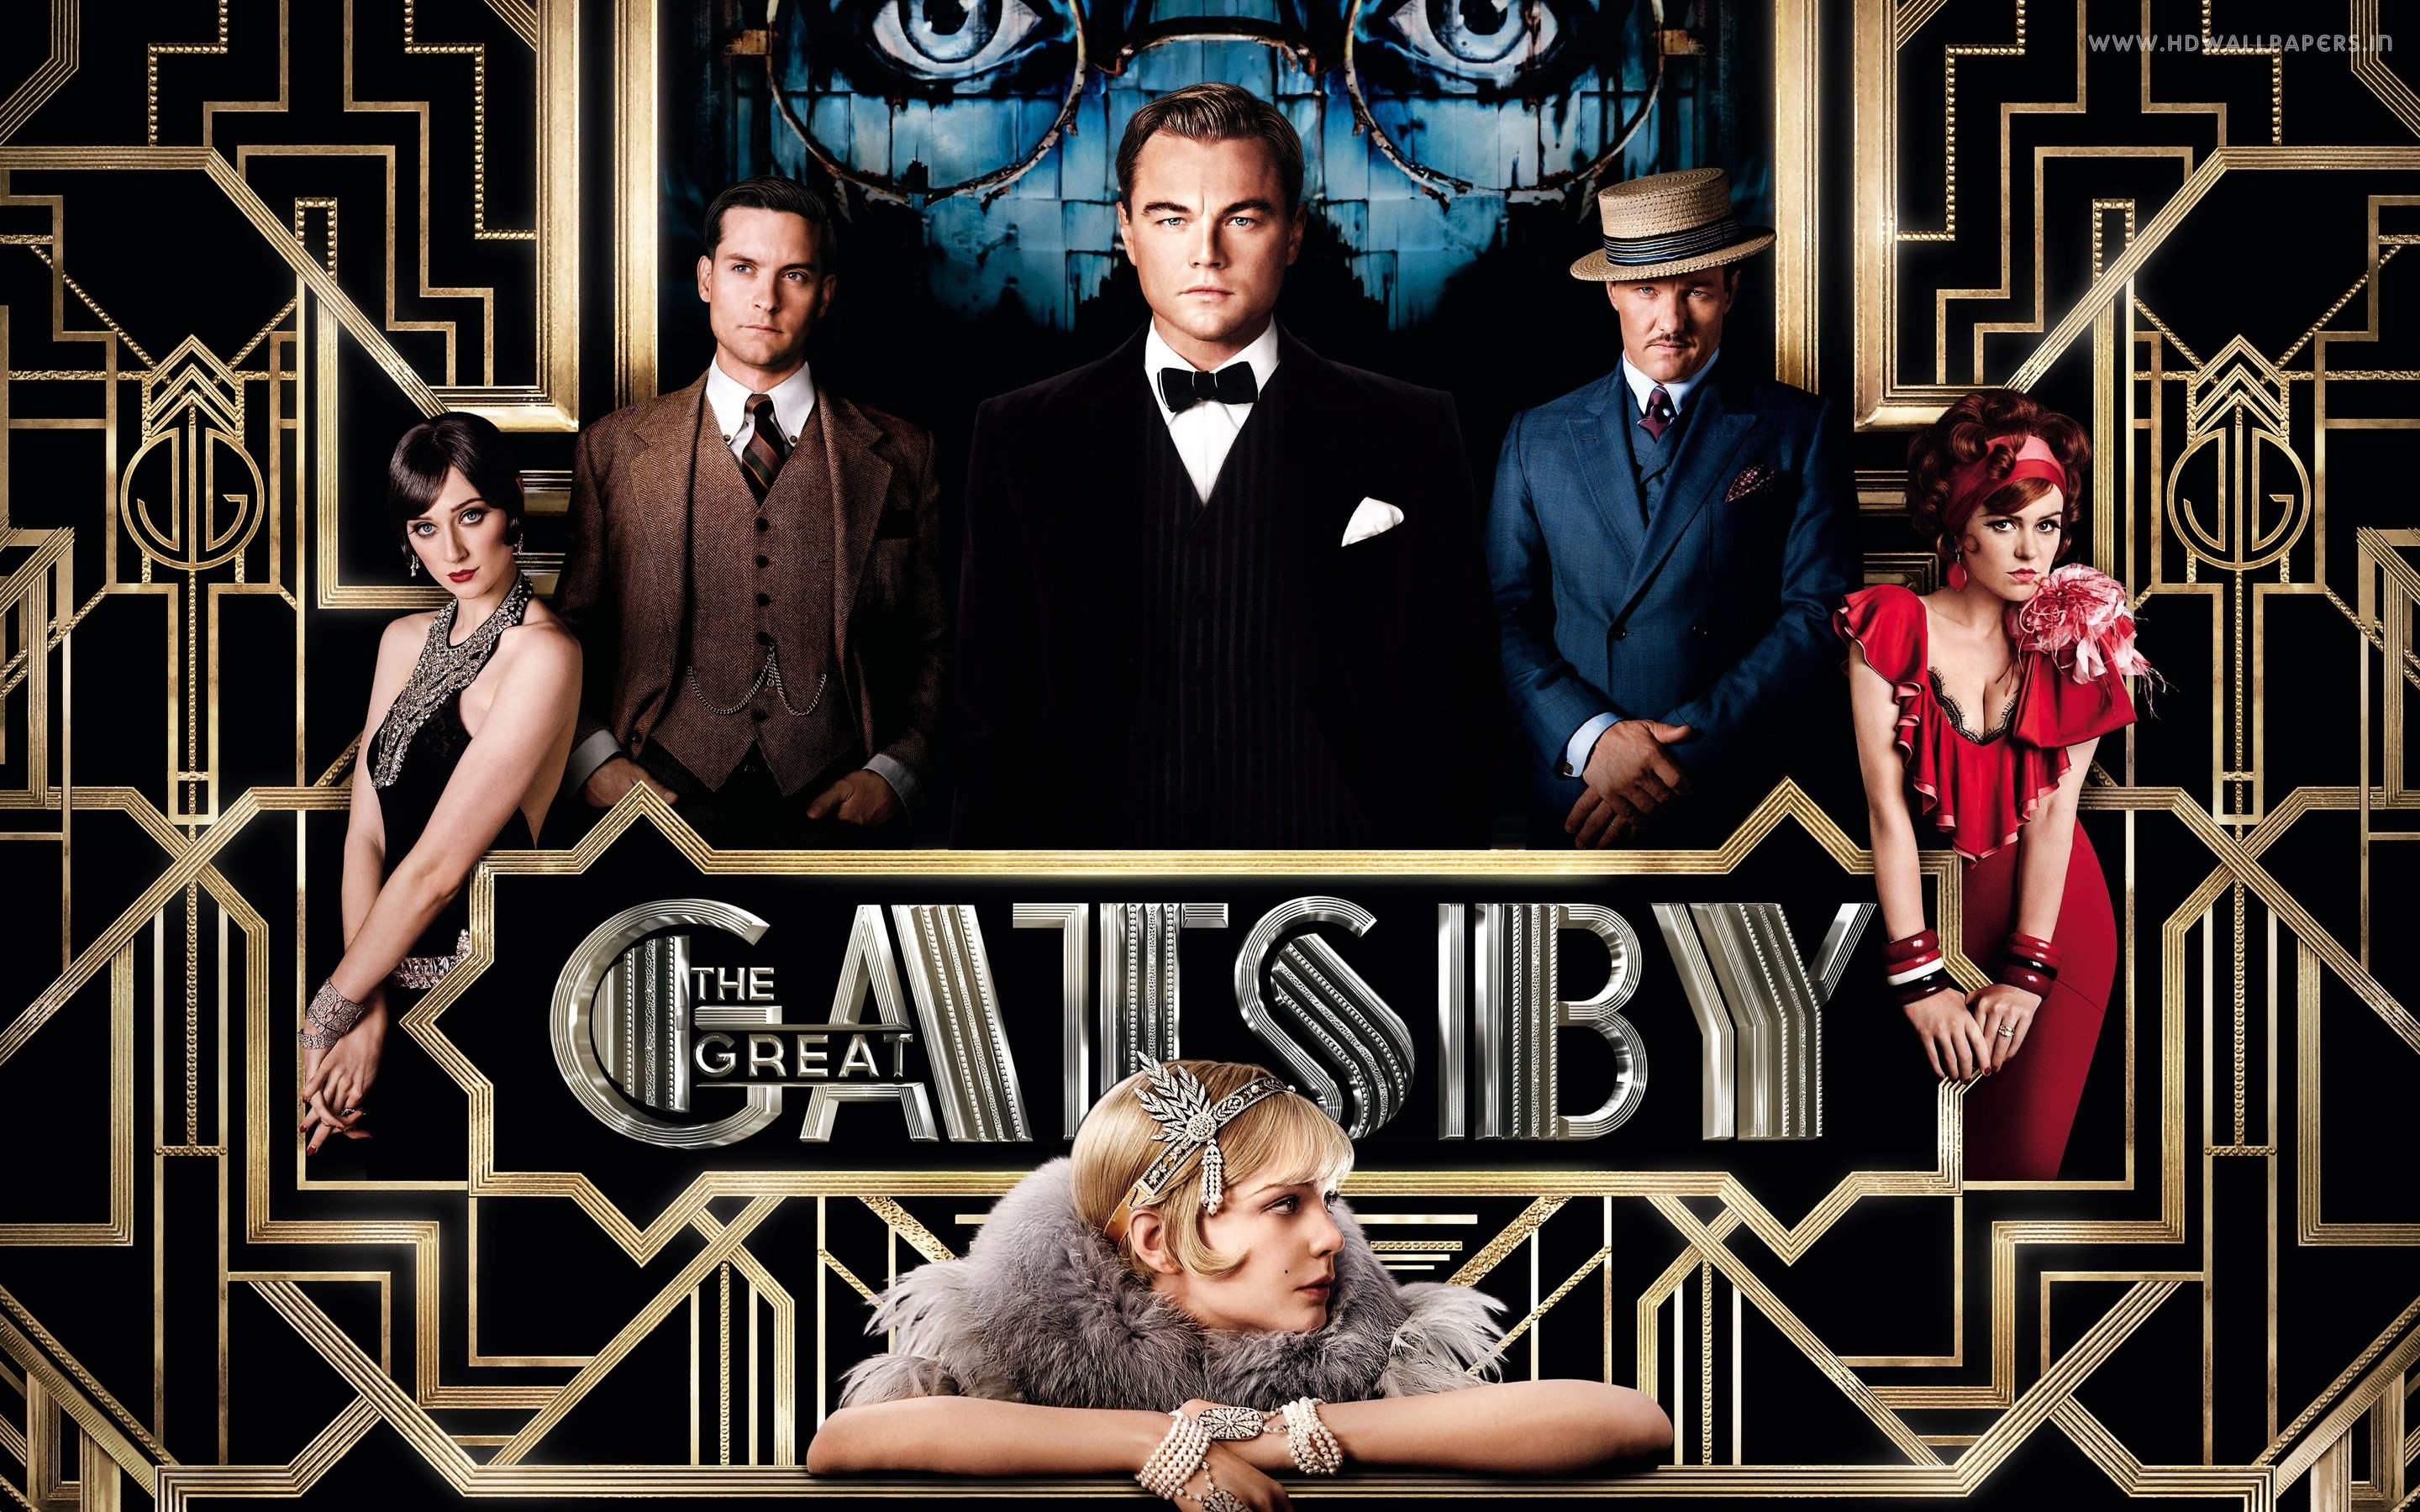 Wallpaper Movie The Great Gatsby